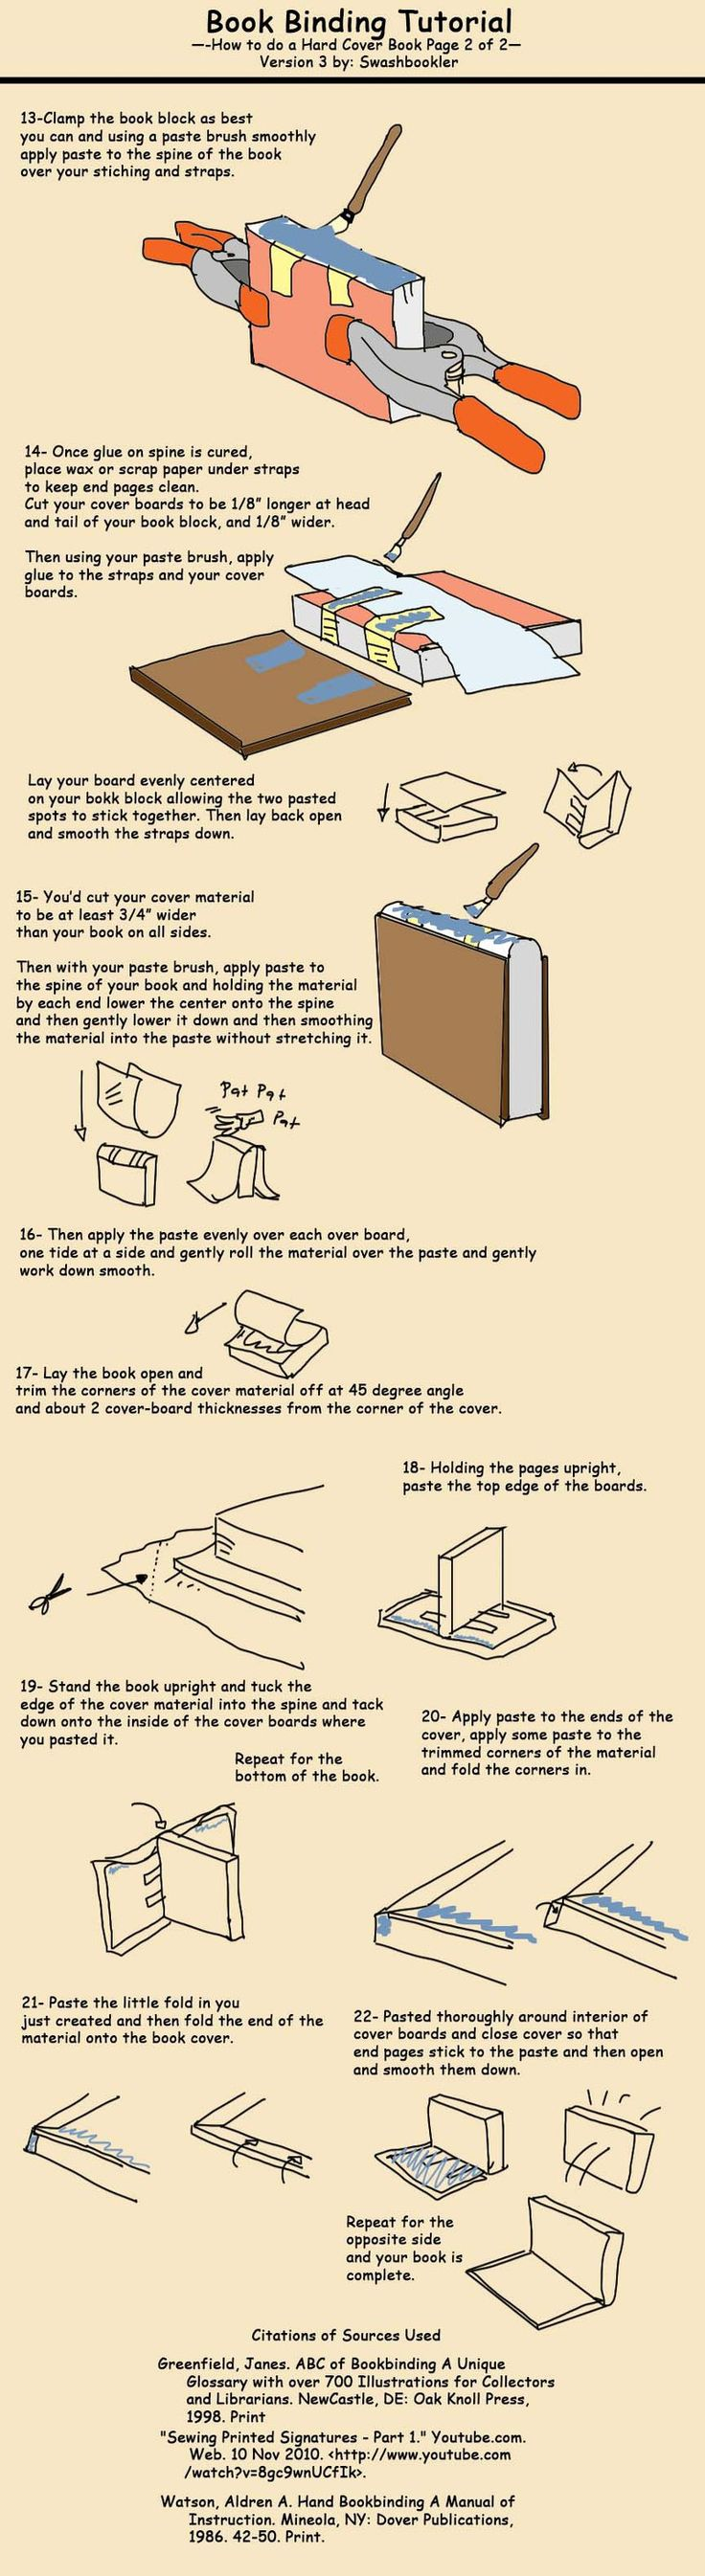 Book Tutorial pg 2 by Swashbookler